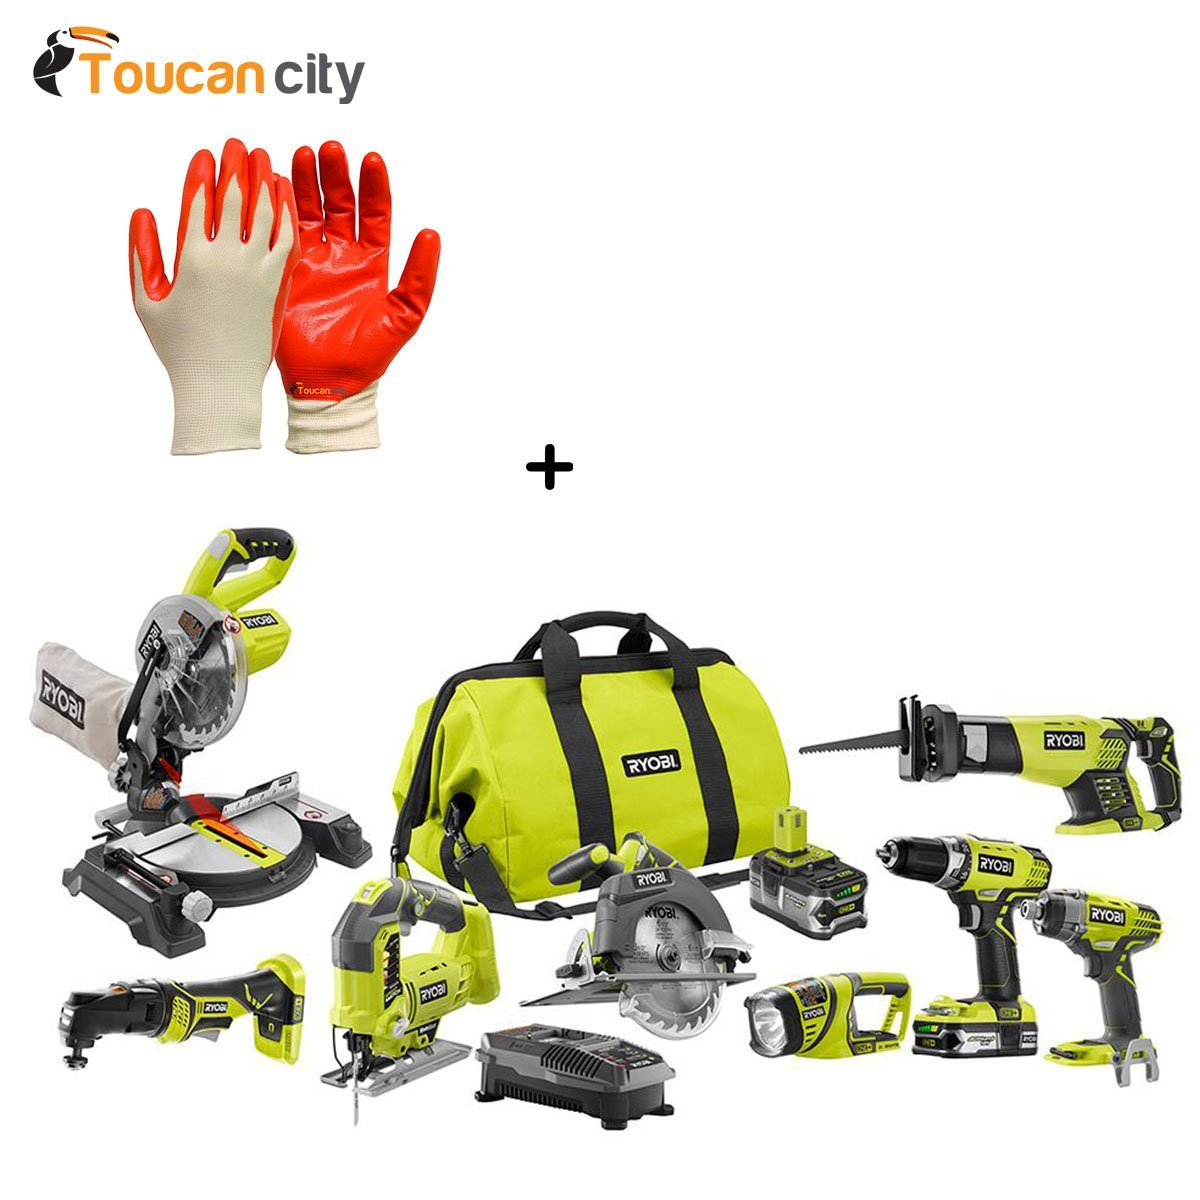 Ryobi 18-Volt ONE+ Lithium-Ion Cordless (8-Tool) Combo Kit with (1) 4.0 Ah Battery and (1) 1.5 Ah Battery, Charger and Bag P1894 and Toucan City Nitrile Dip Gloves(5-Pack)